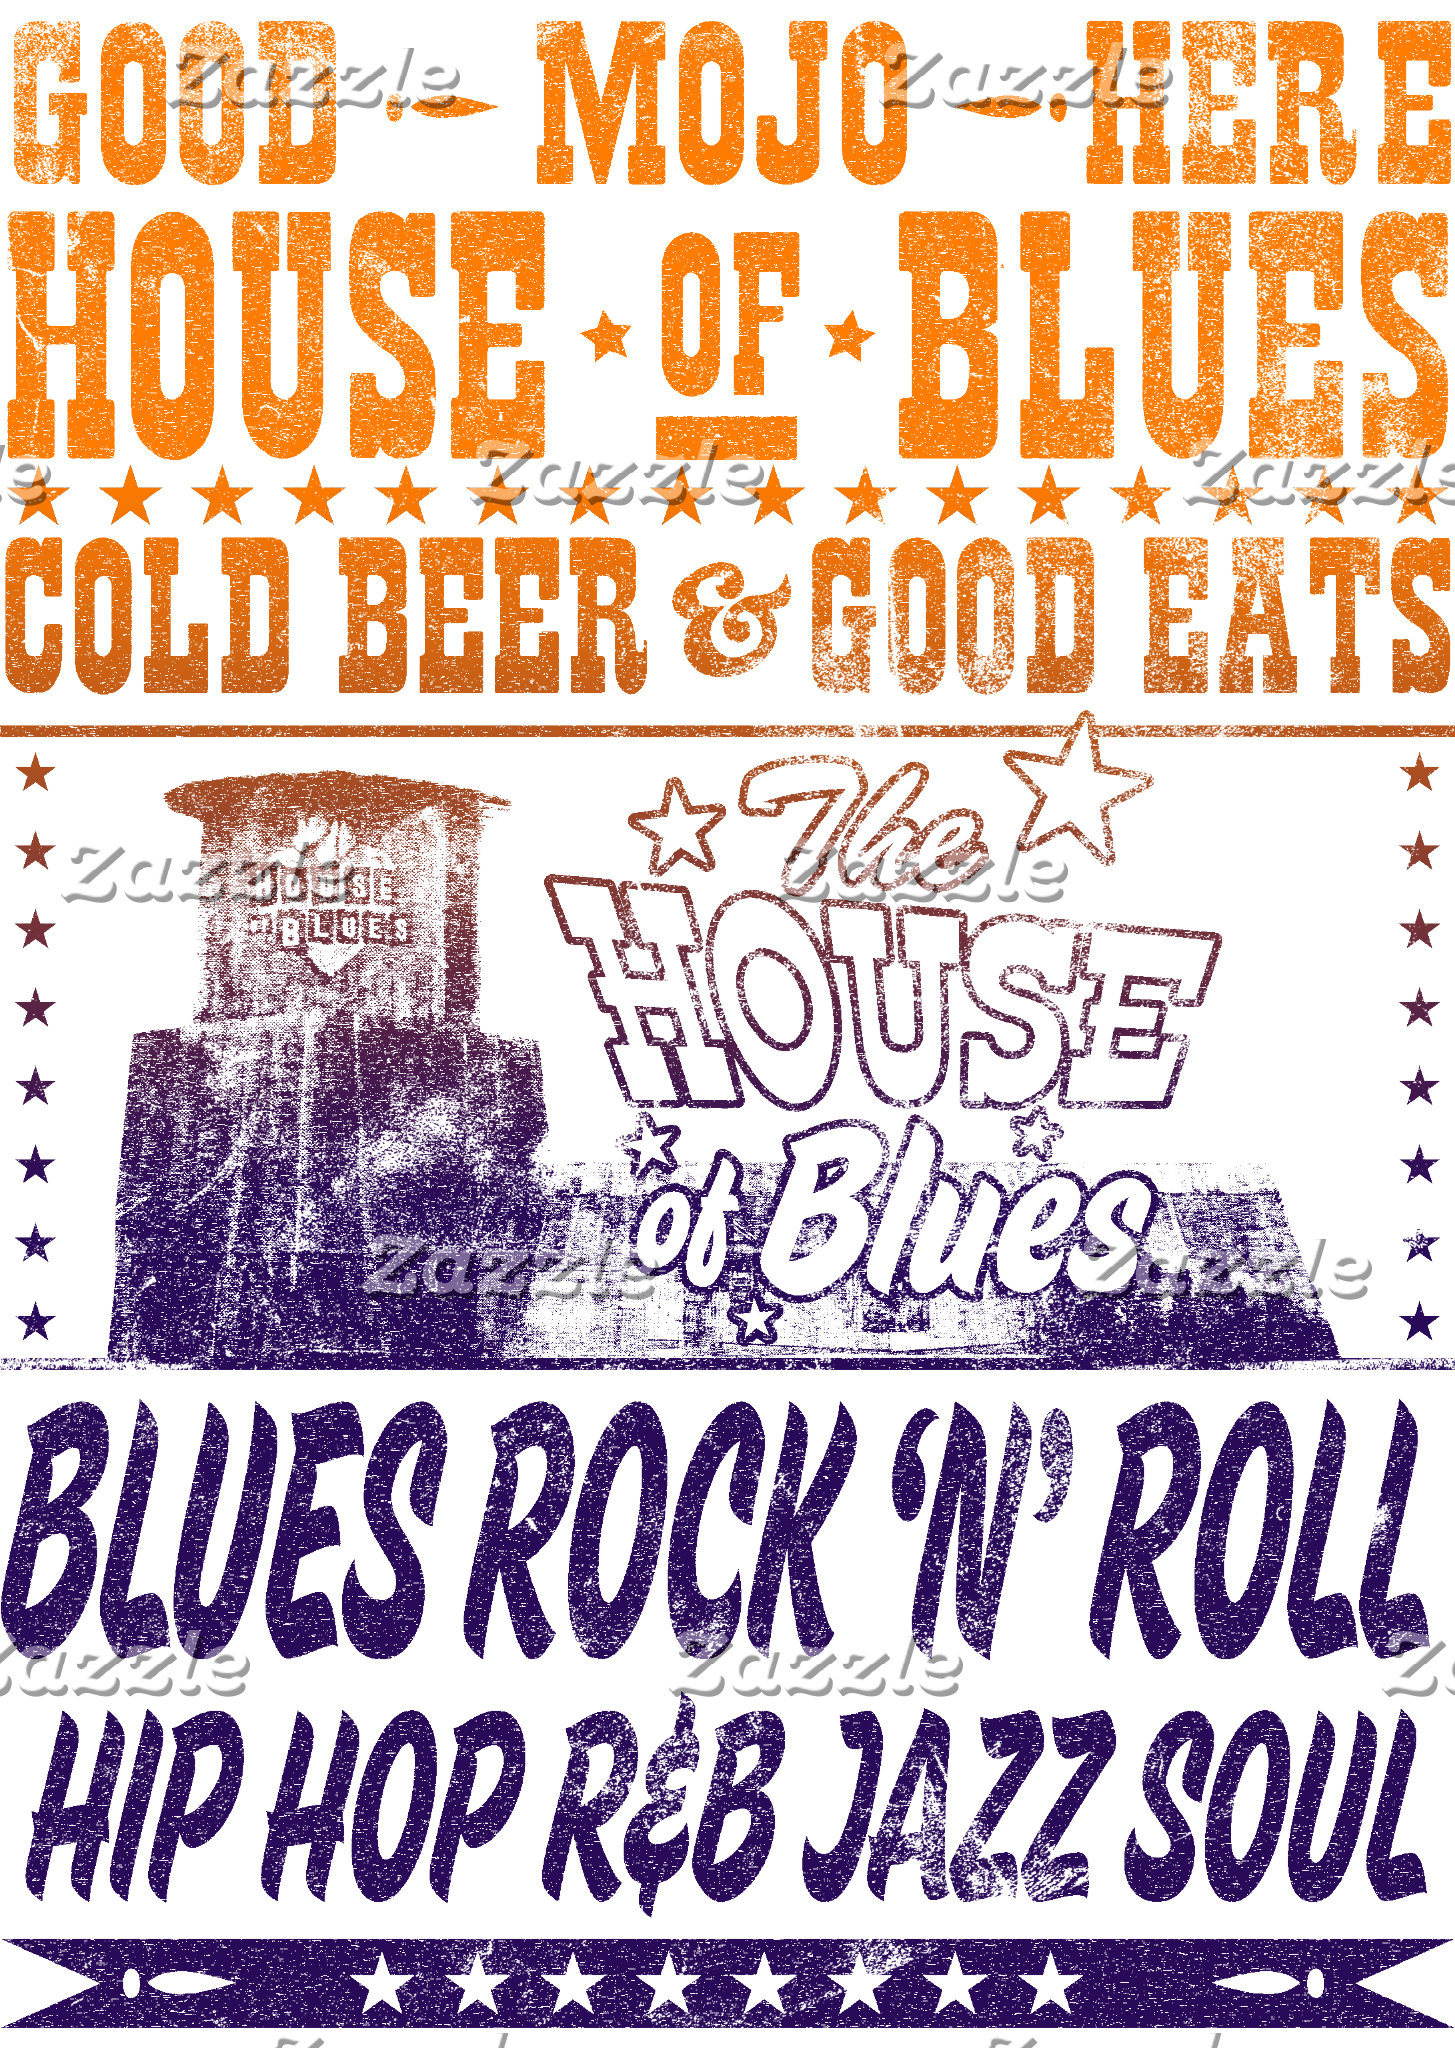 The House of Blues Vintage Poster